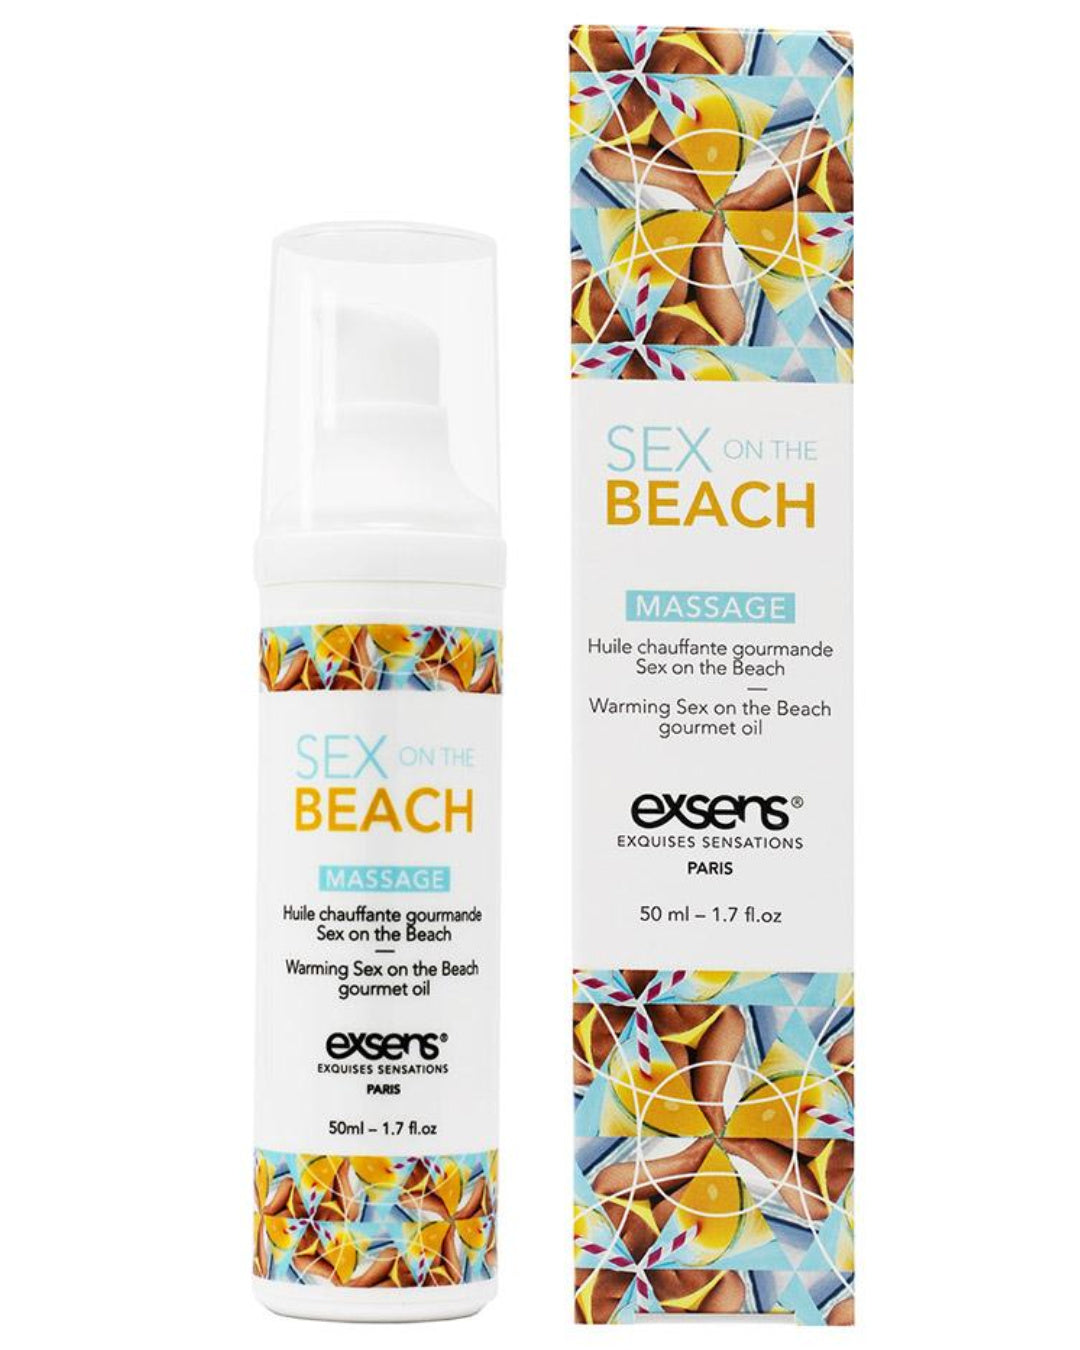 Exsens Flavored Warming Massage Oil - Sex on the Beach 50ml